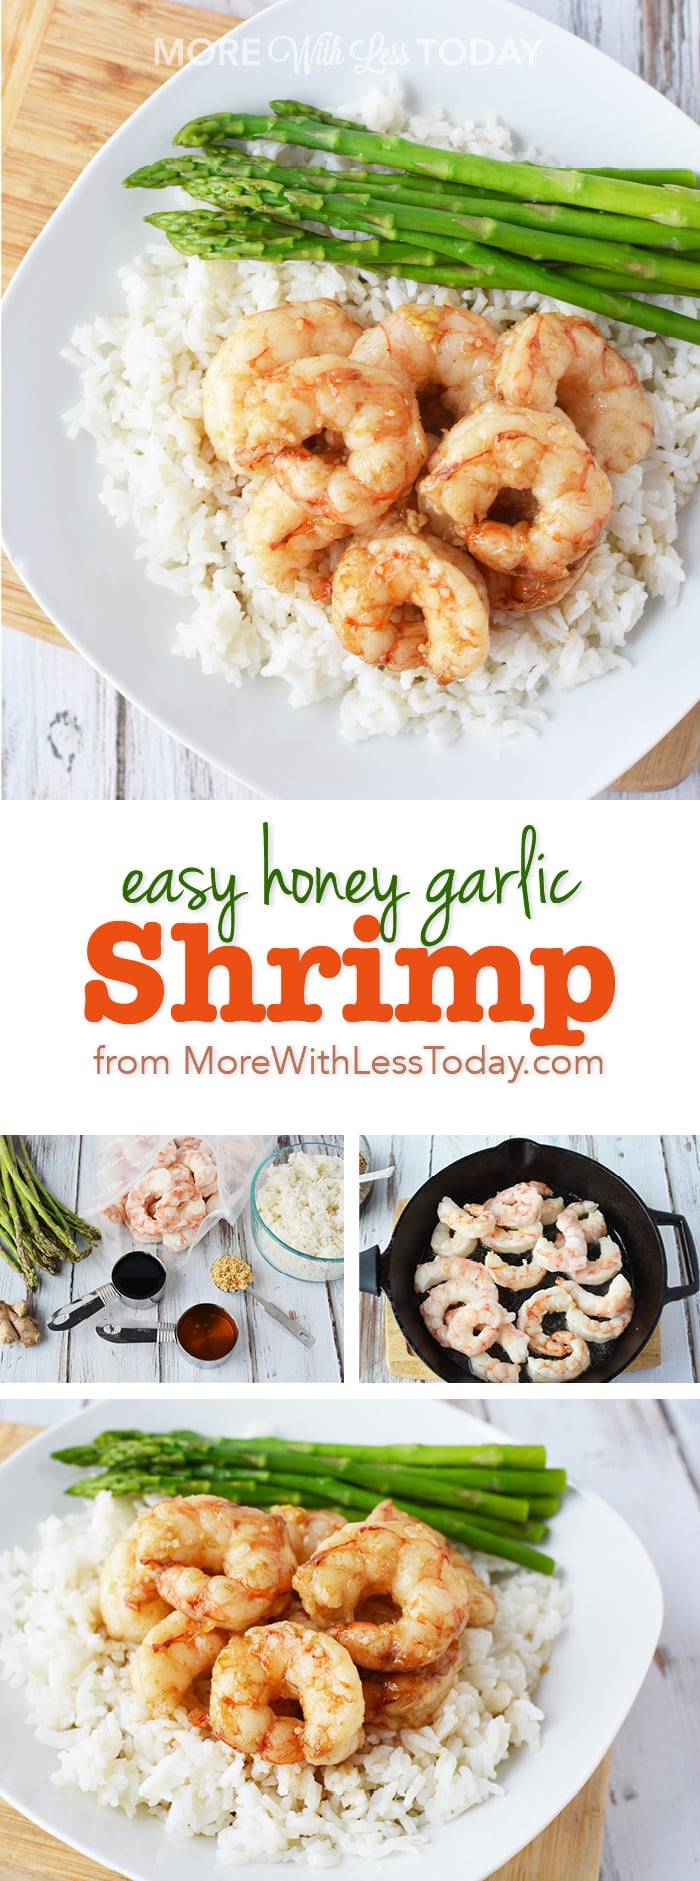 Easy Honey Garlic Shrimp recipe for Pinterest